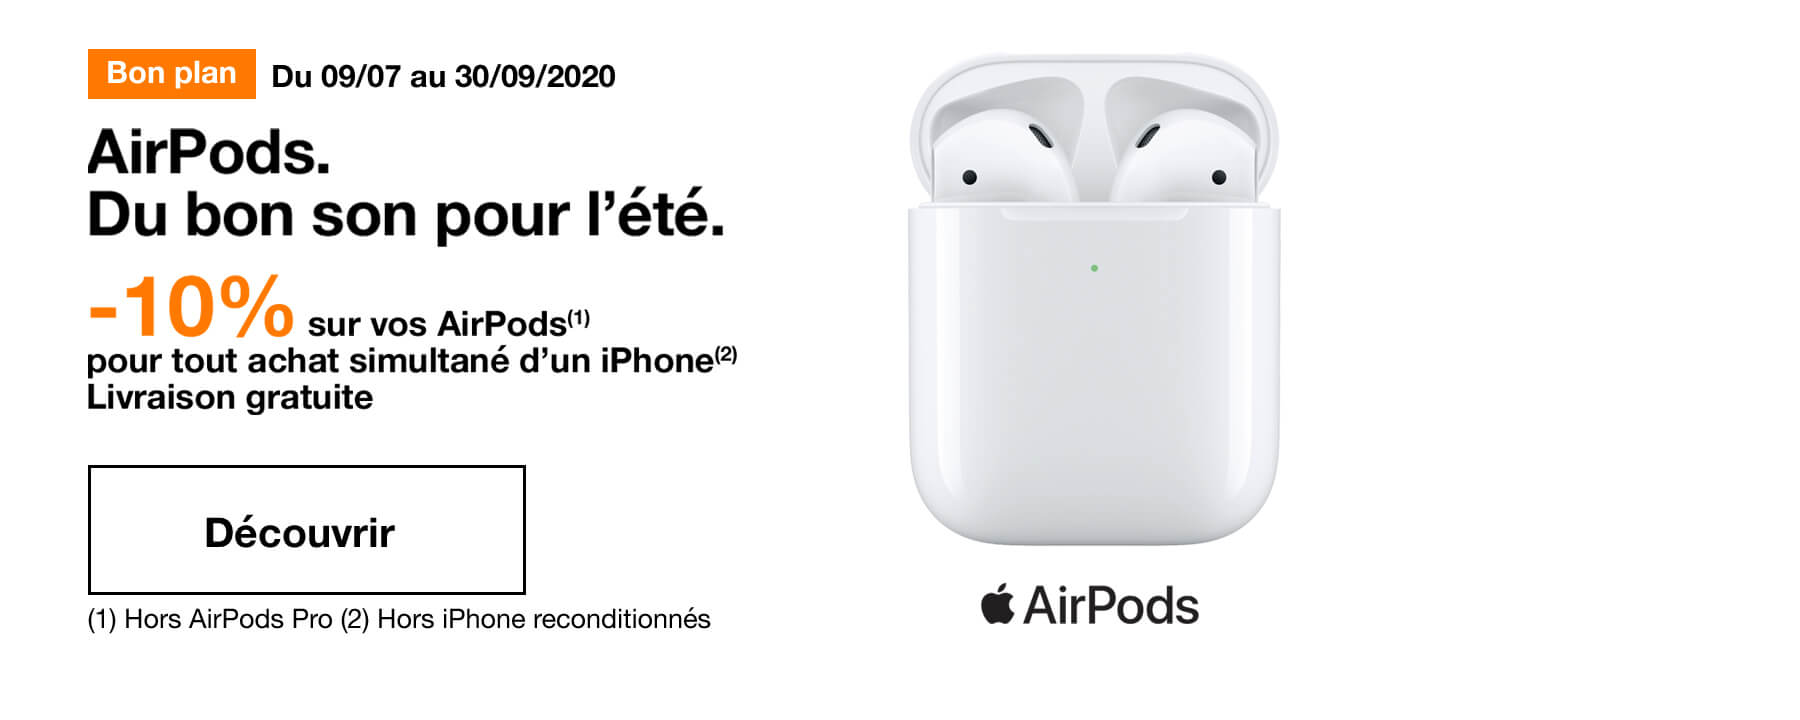 Bon plan Airpods et iPhone